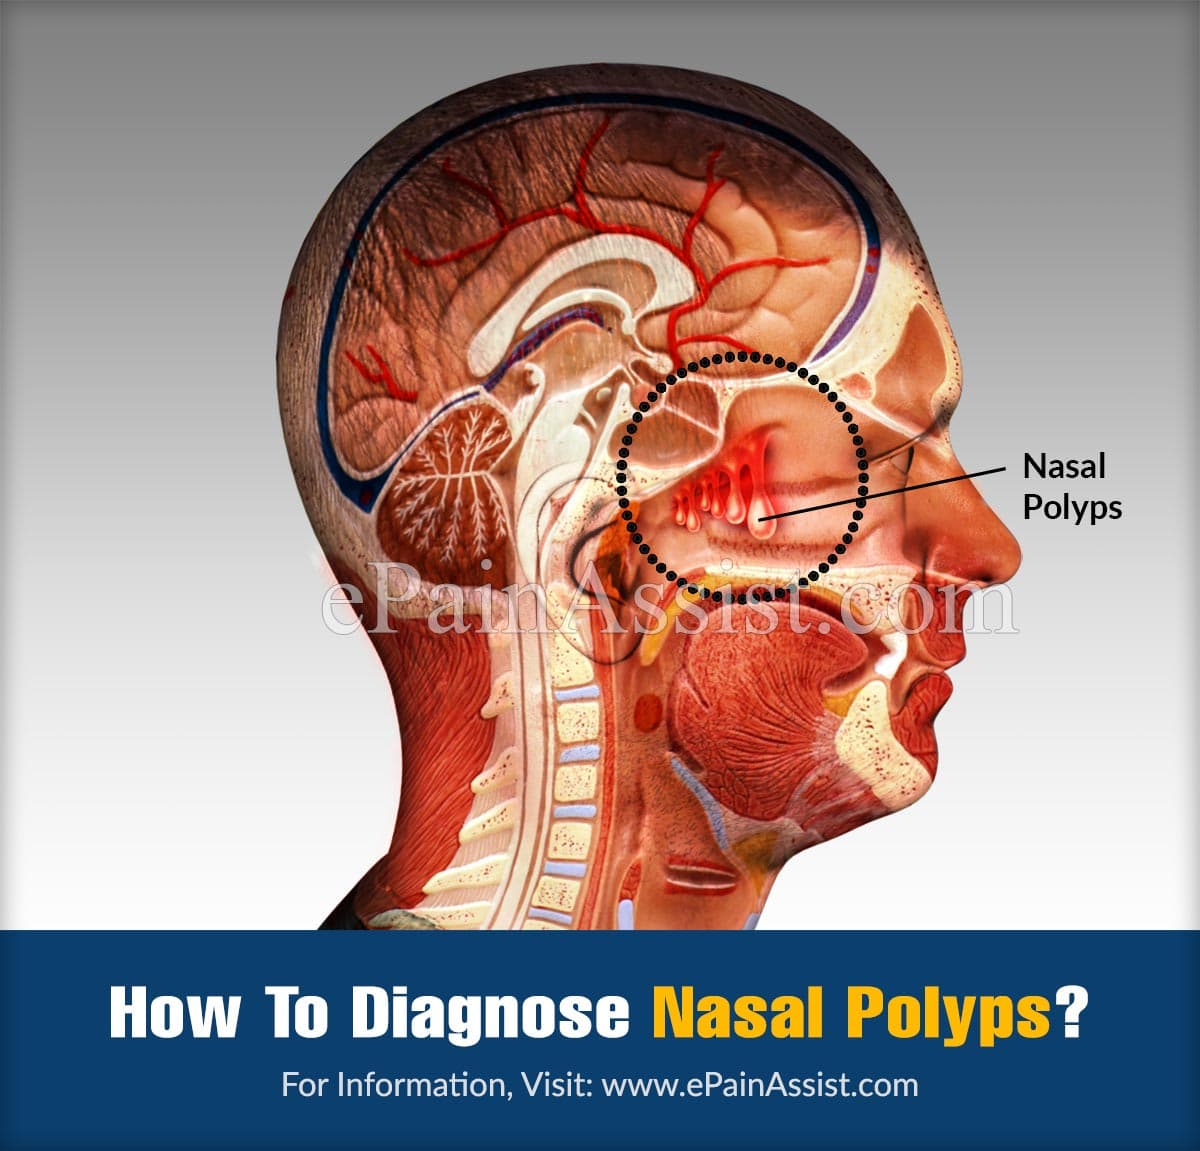 How To Diagnose Nasal Polyps?